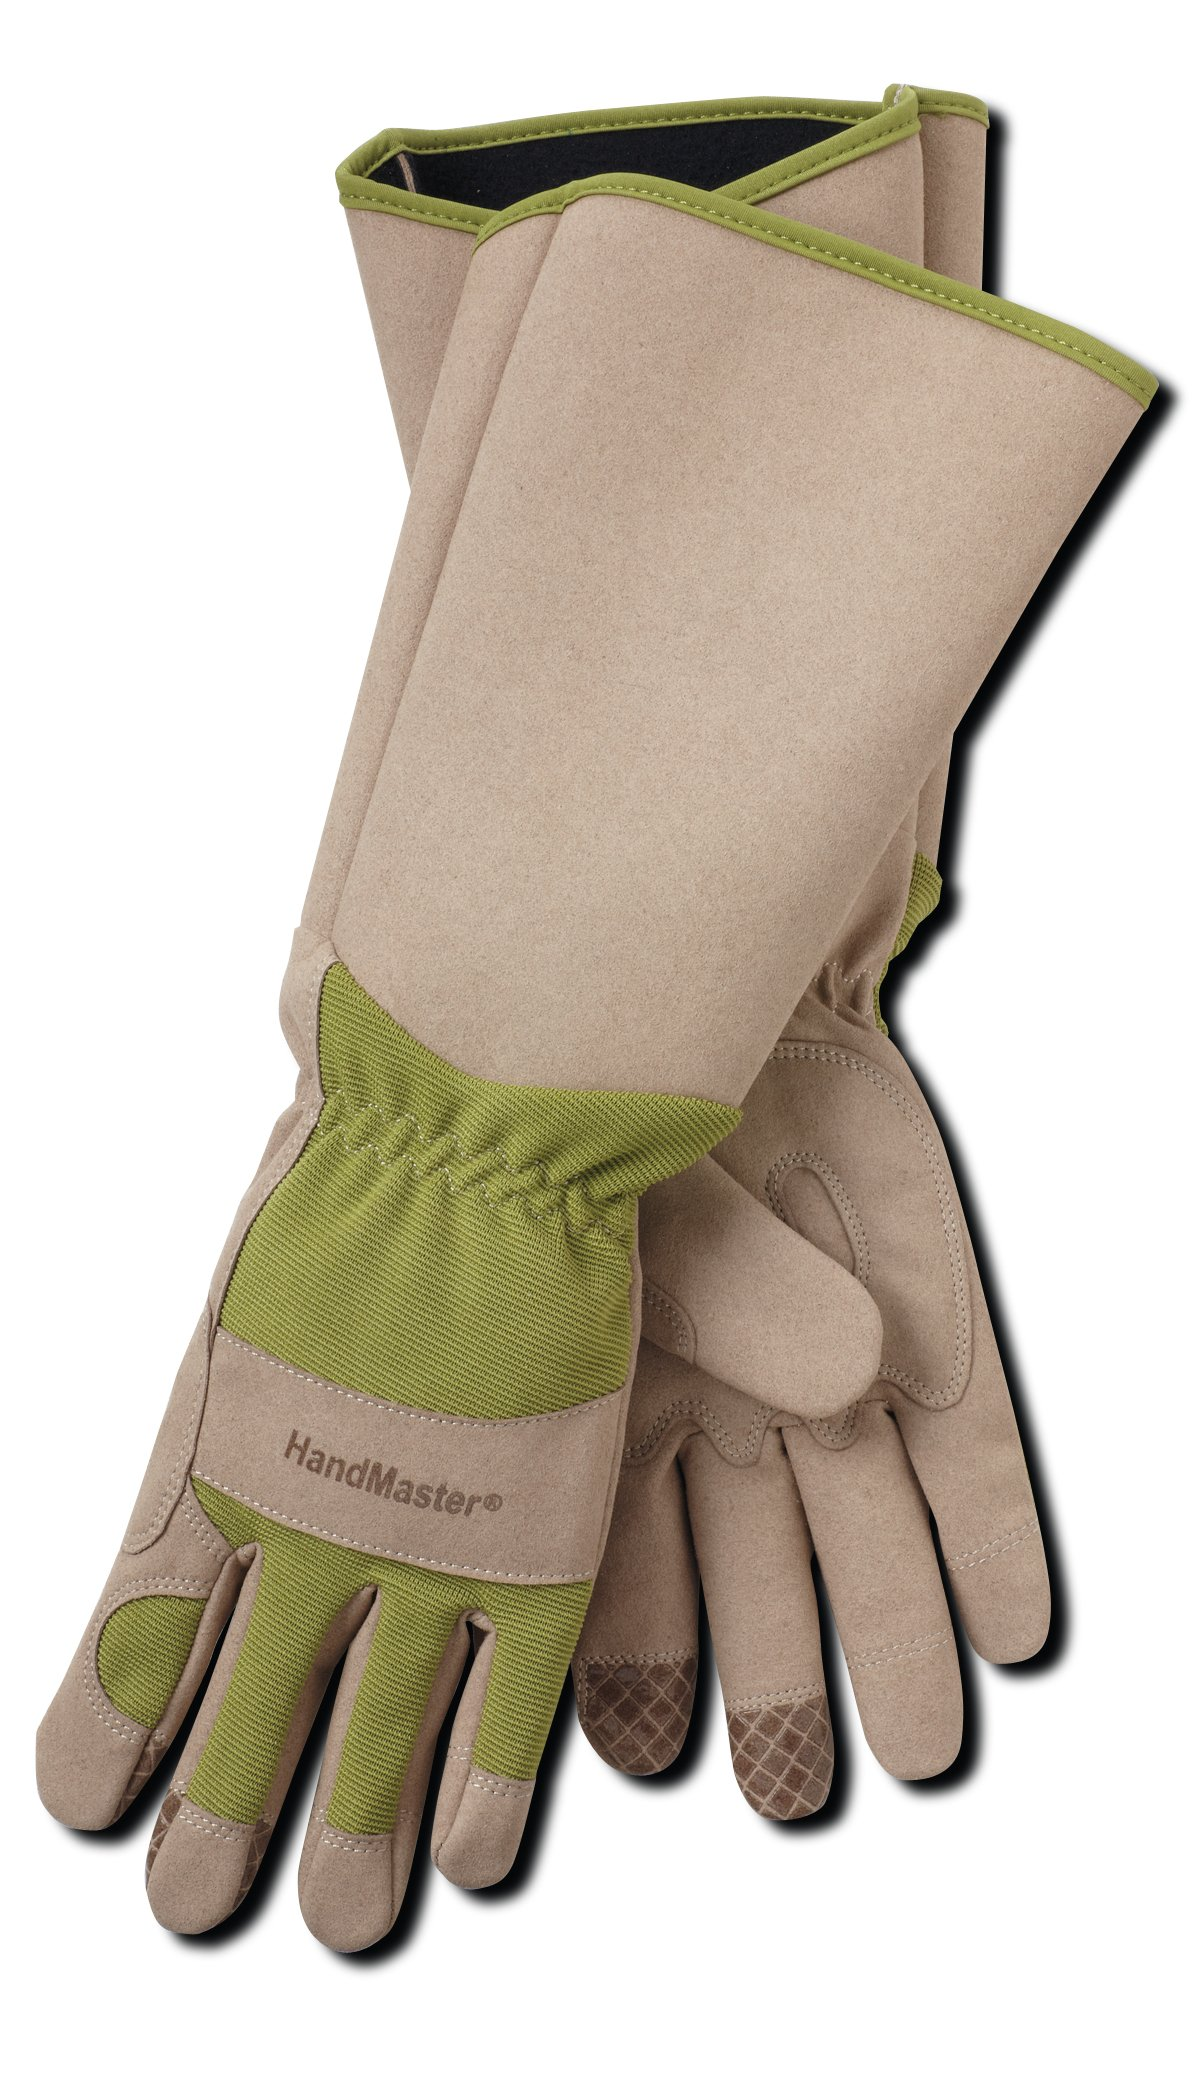 Professional Rose Pruning Thornproof Gardening Gloves with Extra Long Forearm Protection for Men (BE194T-L) - Puncture Resistant, Large (1 Pair)